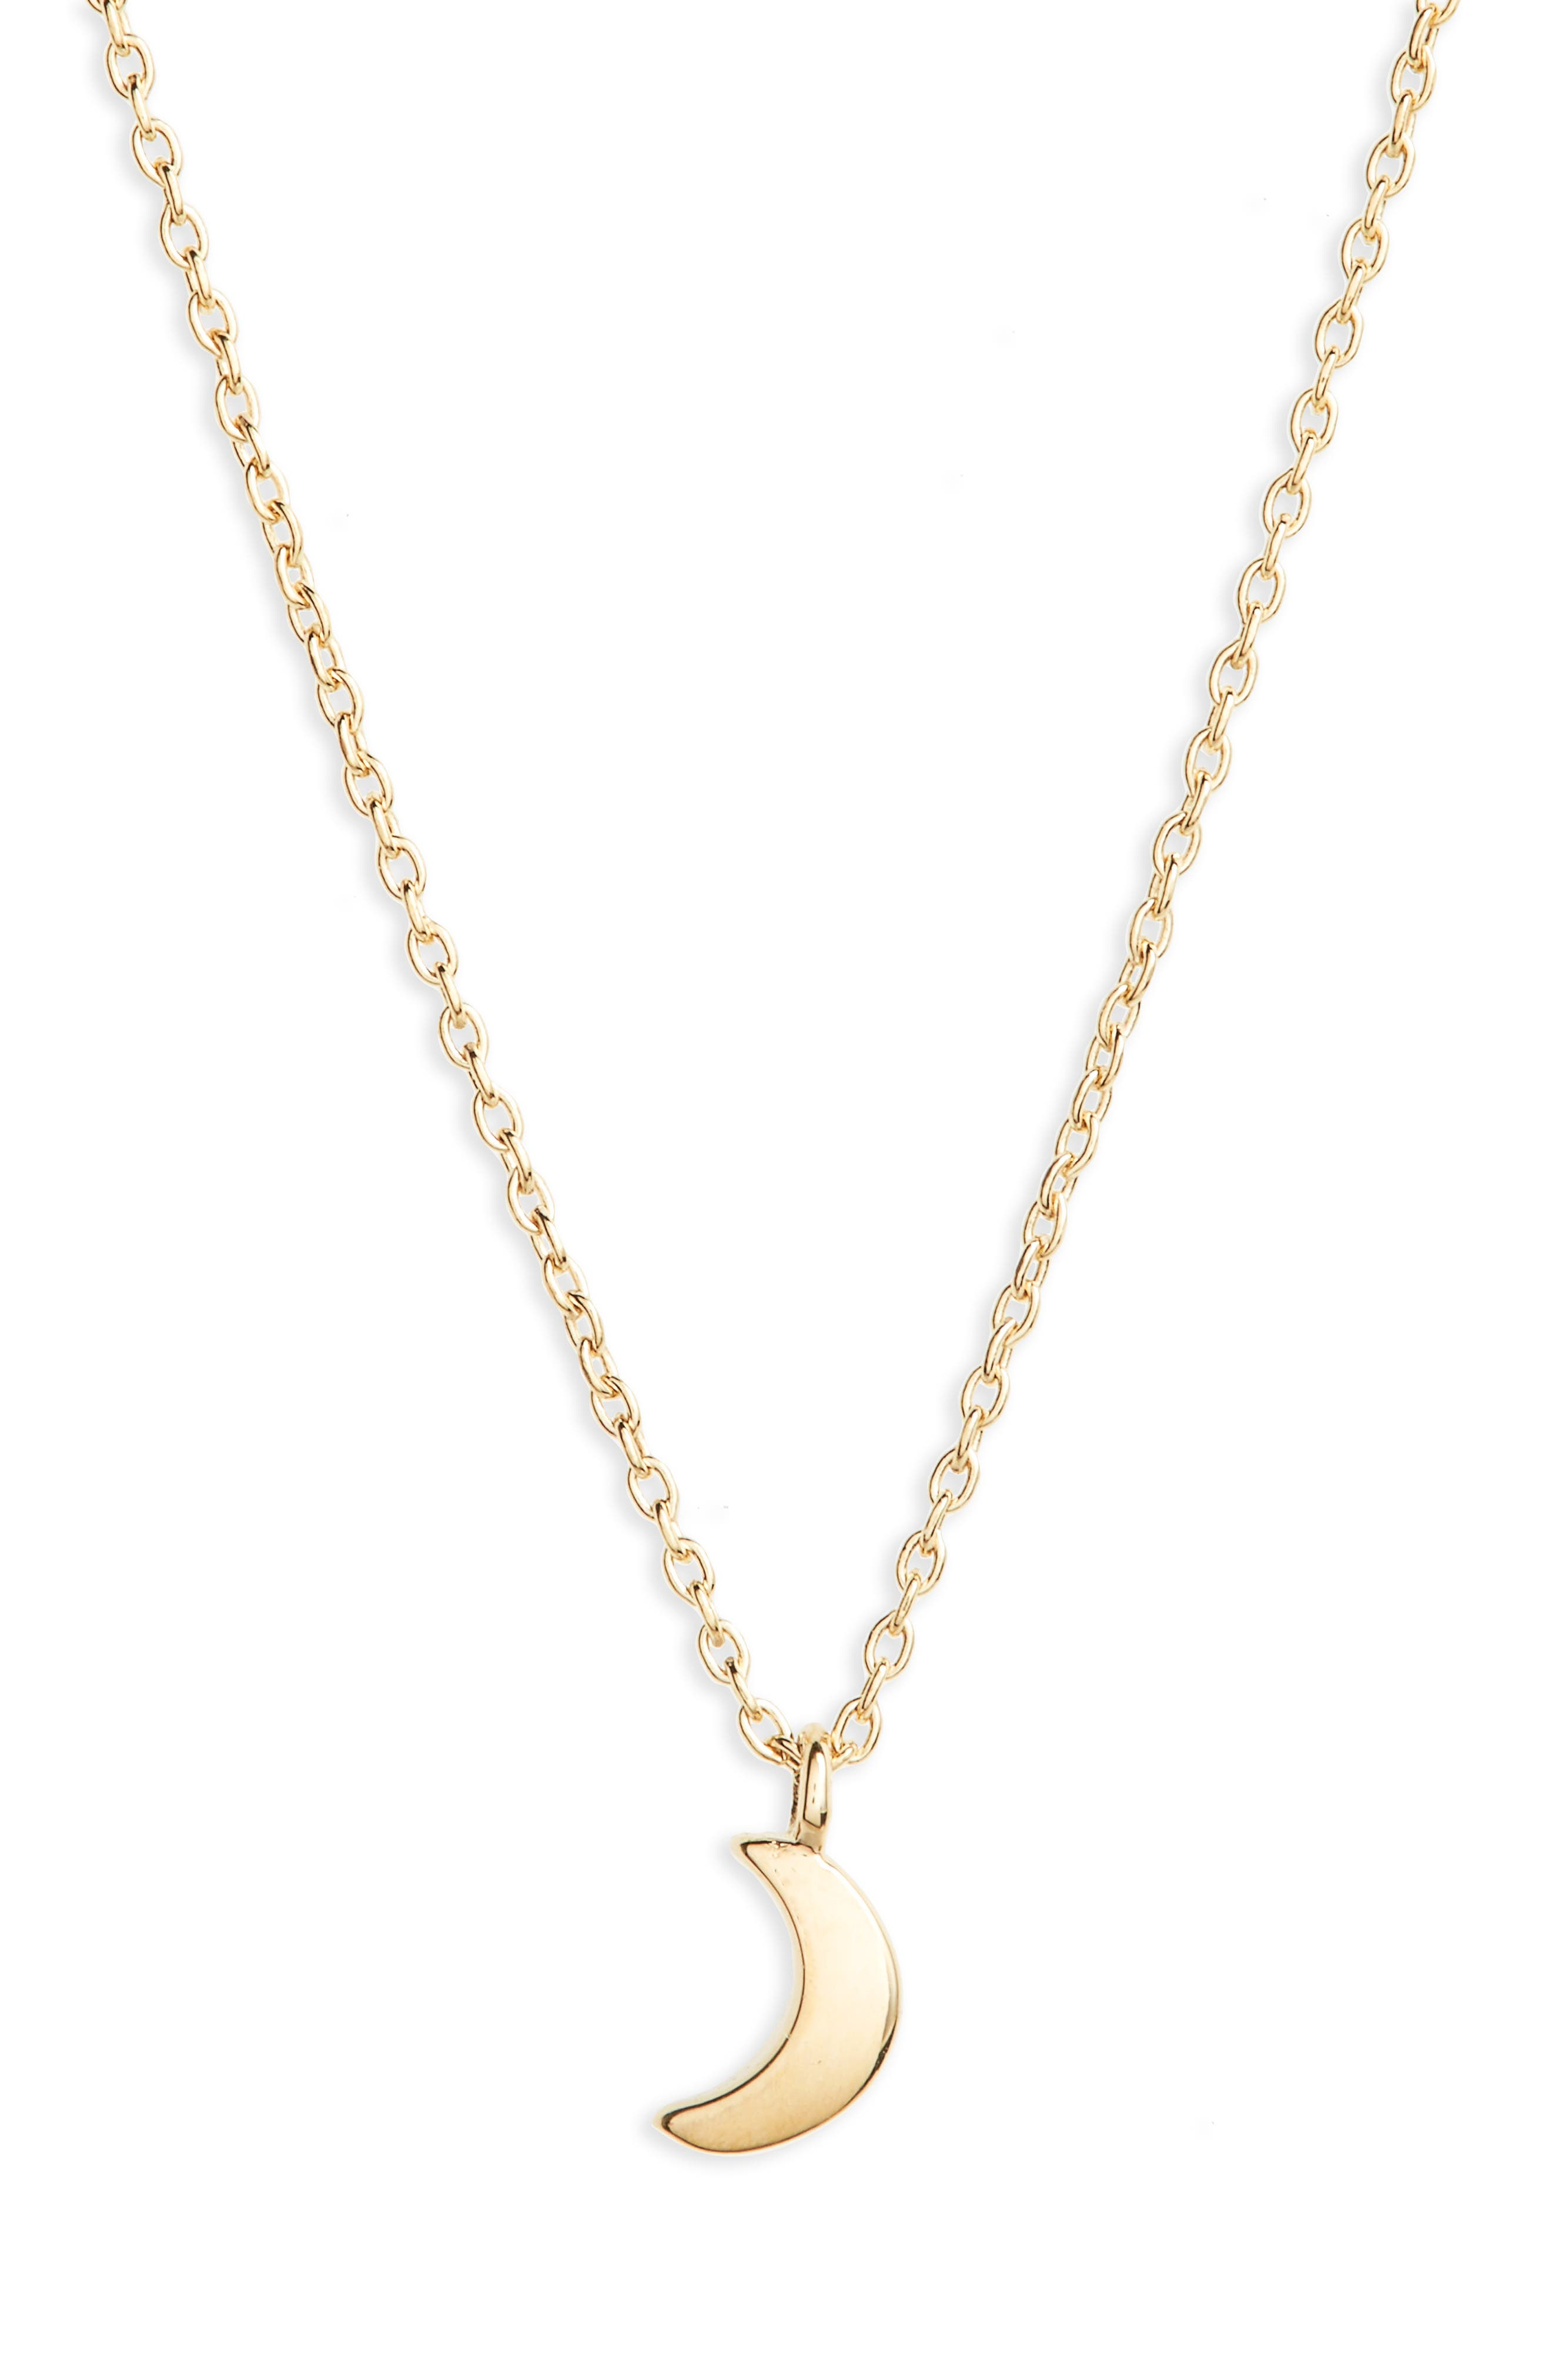 Crescent Moon Charm Necklace,                         Main,                         color, 14K Gold